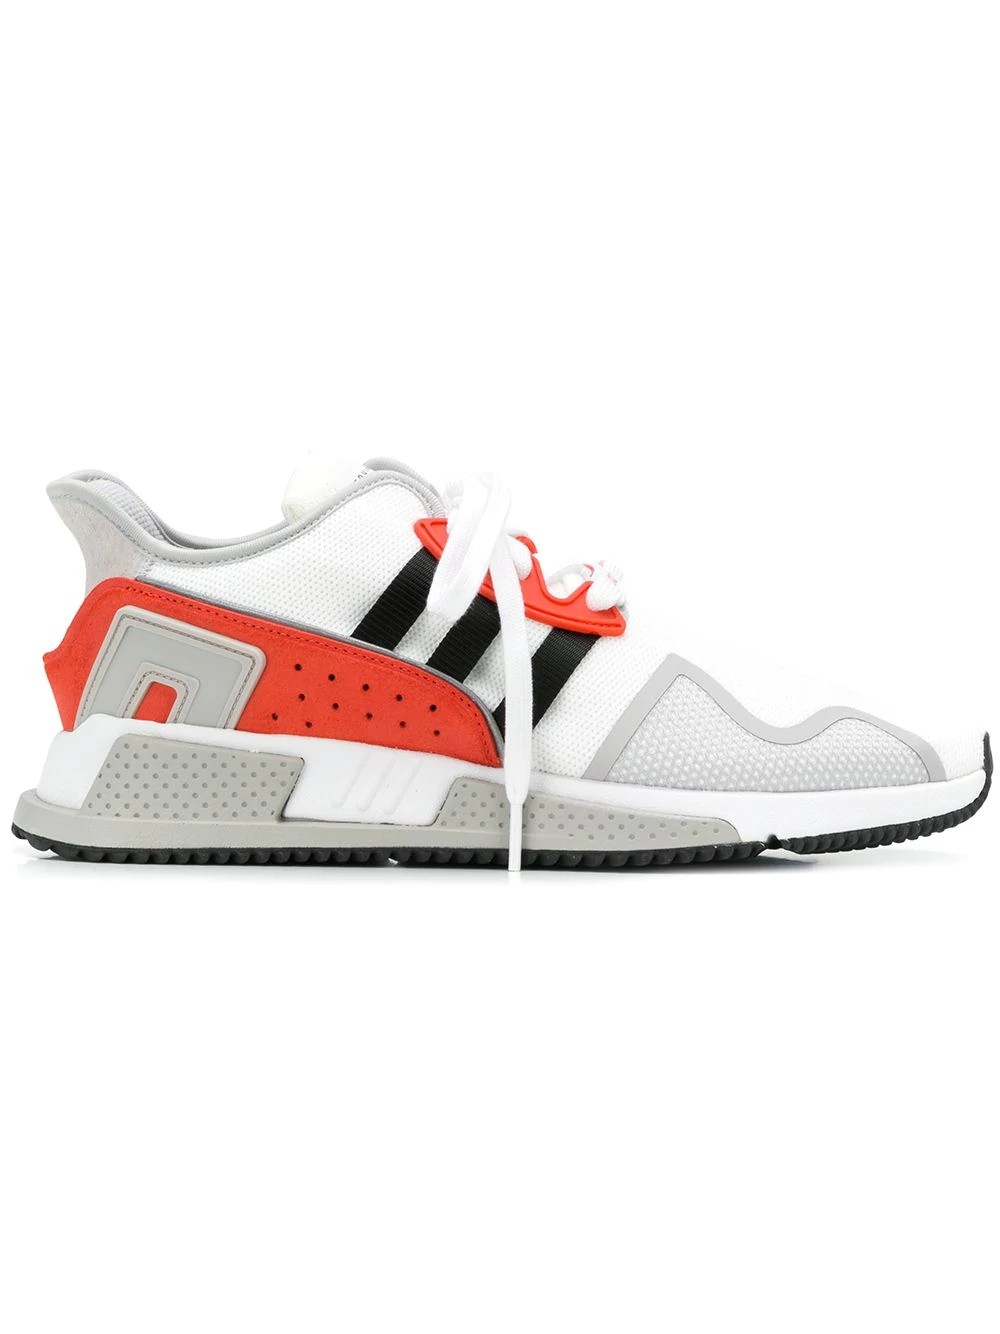 Adidas EQT Cushion ADV Blanche Rouge | BB7180